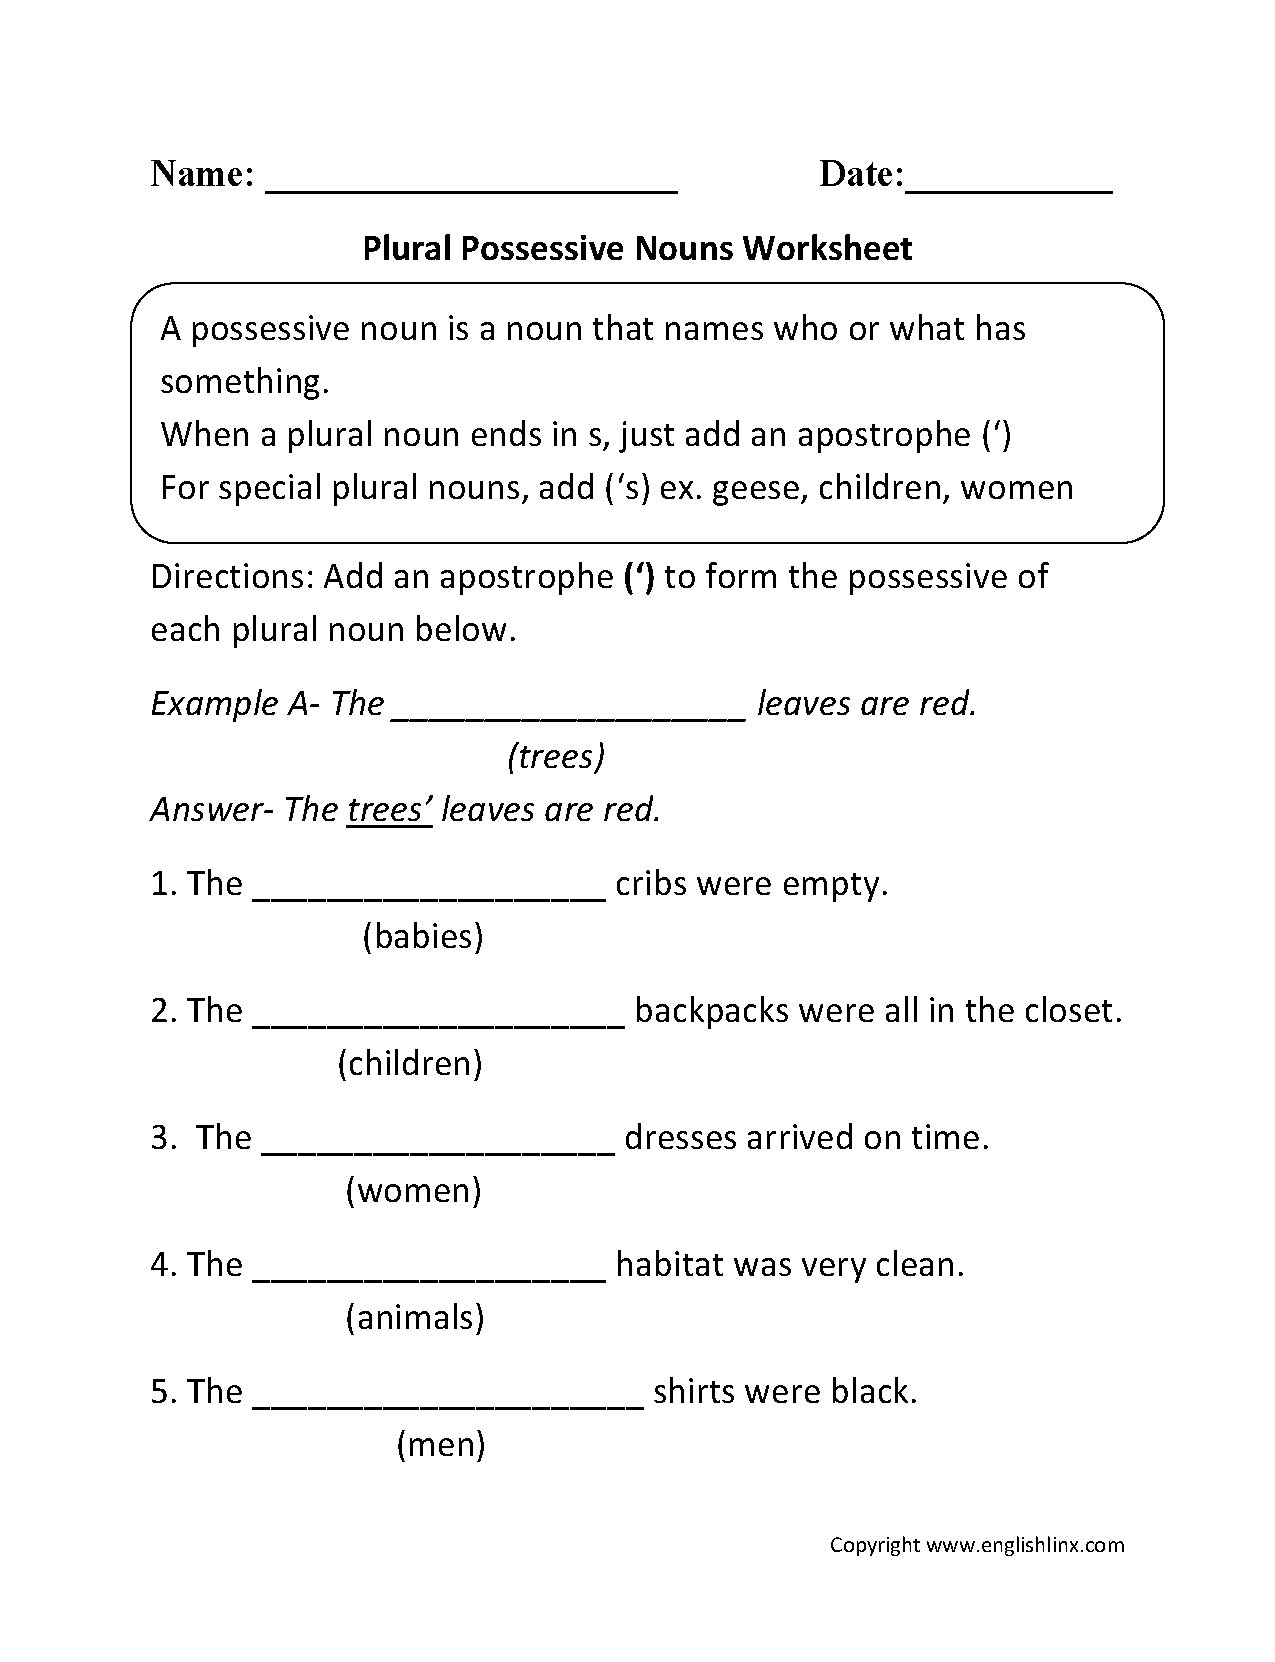 Aldiablosus  Seductive Nouns Worksheets  Possessive Nouns Worksheets With Interesting Possessive Nouns Worksheets With Extraordinary Dna Replication Worksheet Also Comparing Fractions Worksheet In Addition Systems Of Equations Worksheet And Naming Ionic Compounds Worksheet As Well As Math Facts Worksheets Additionally Integers Worksheet From Englishlinxcom With Aldiablosus  Interesting Nouns Worksheets  Possessive Nouns Worksheets With Extraordinary Possessive Nouns Worksheets And Seductive Dna Replication Worksheet Also Comparing Fractions Worksheet In Addition Systems Of Equations Worksheet From Englishlinxcom